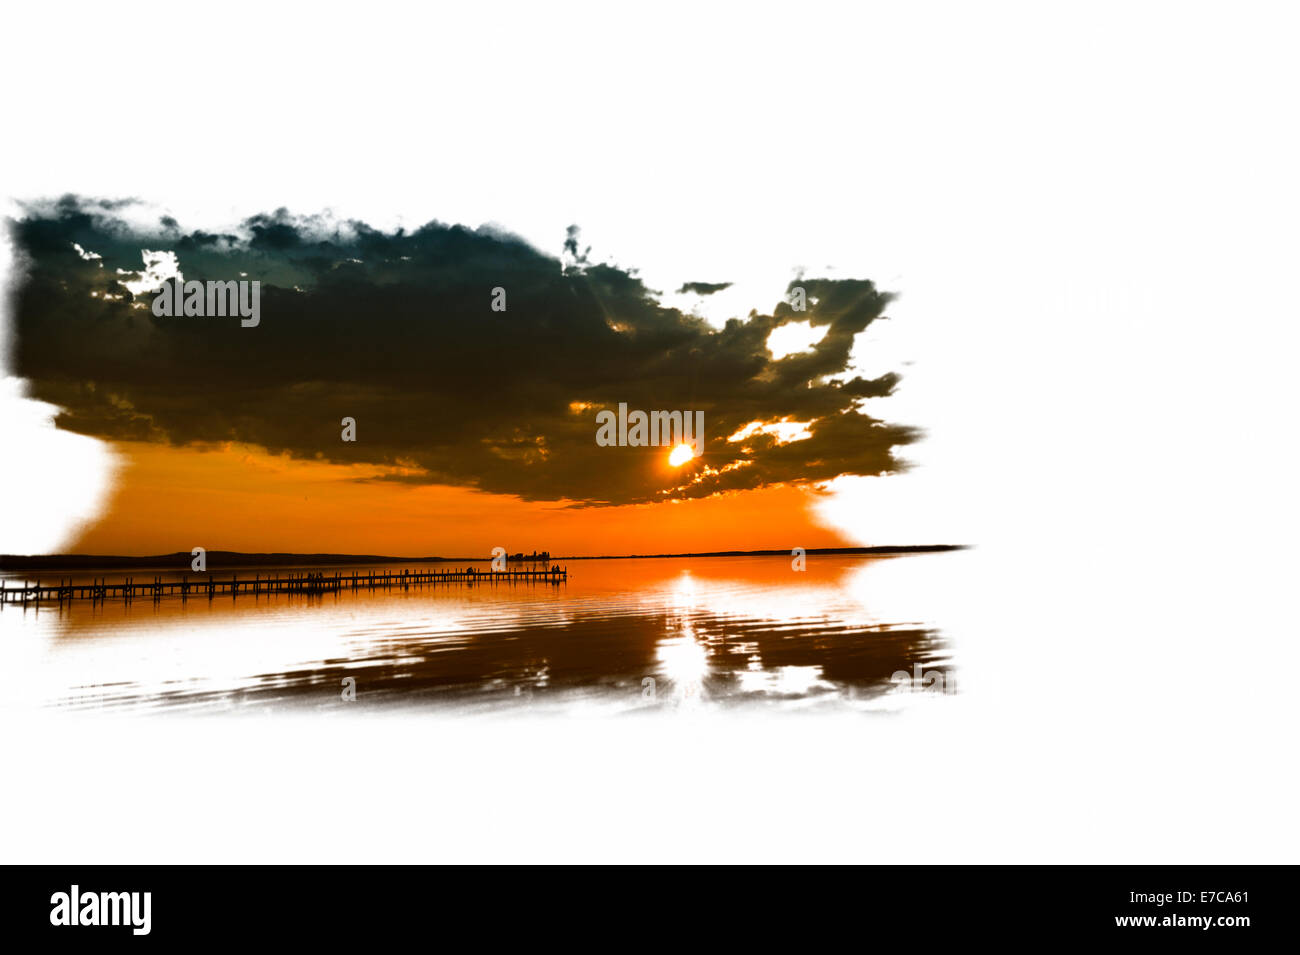 Graphics of Dramatic evening sky above the lake with a wooden pier in the foreground, Steinhude am Meer, Lower Saxony. - Stock Image